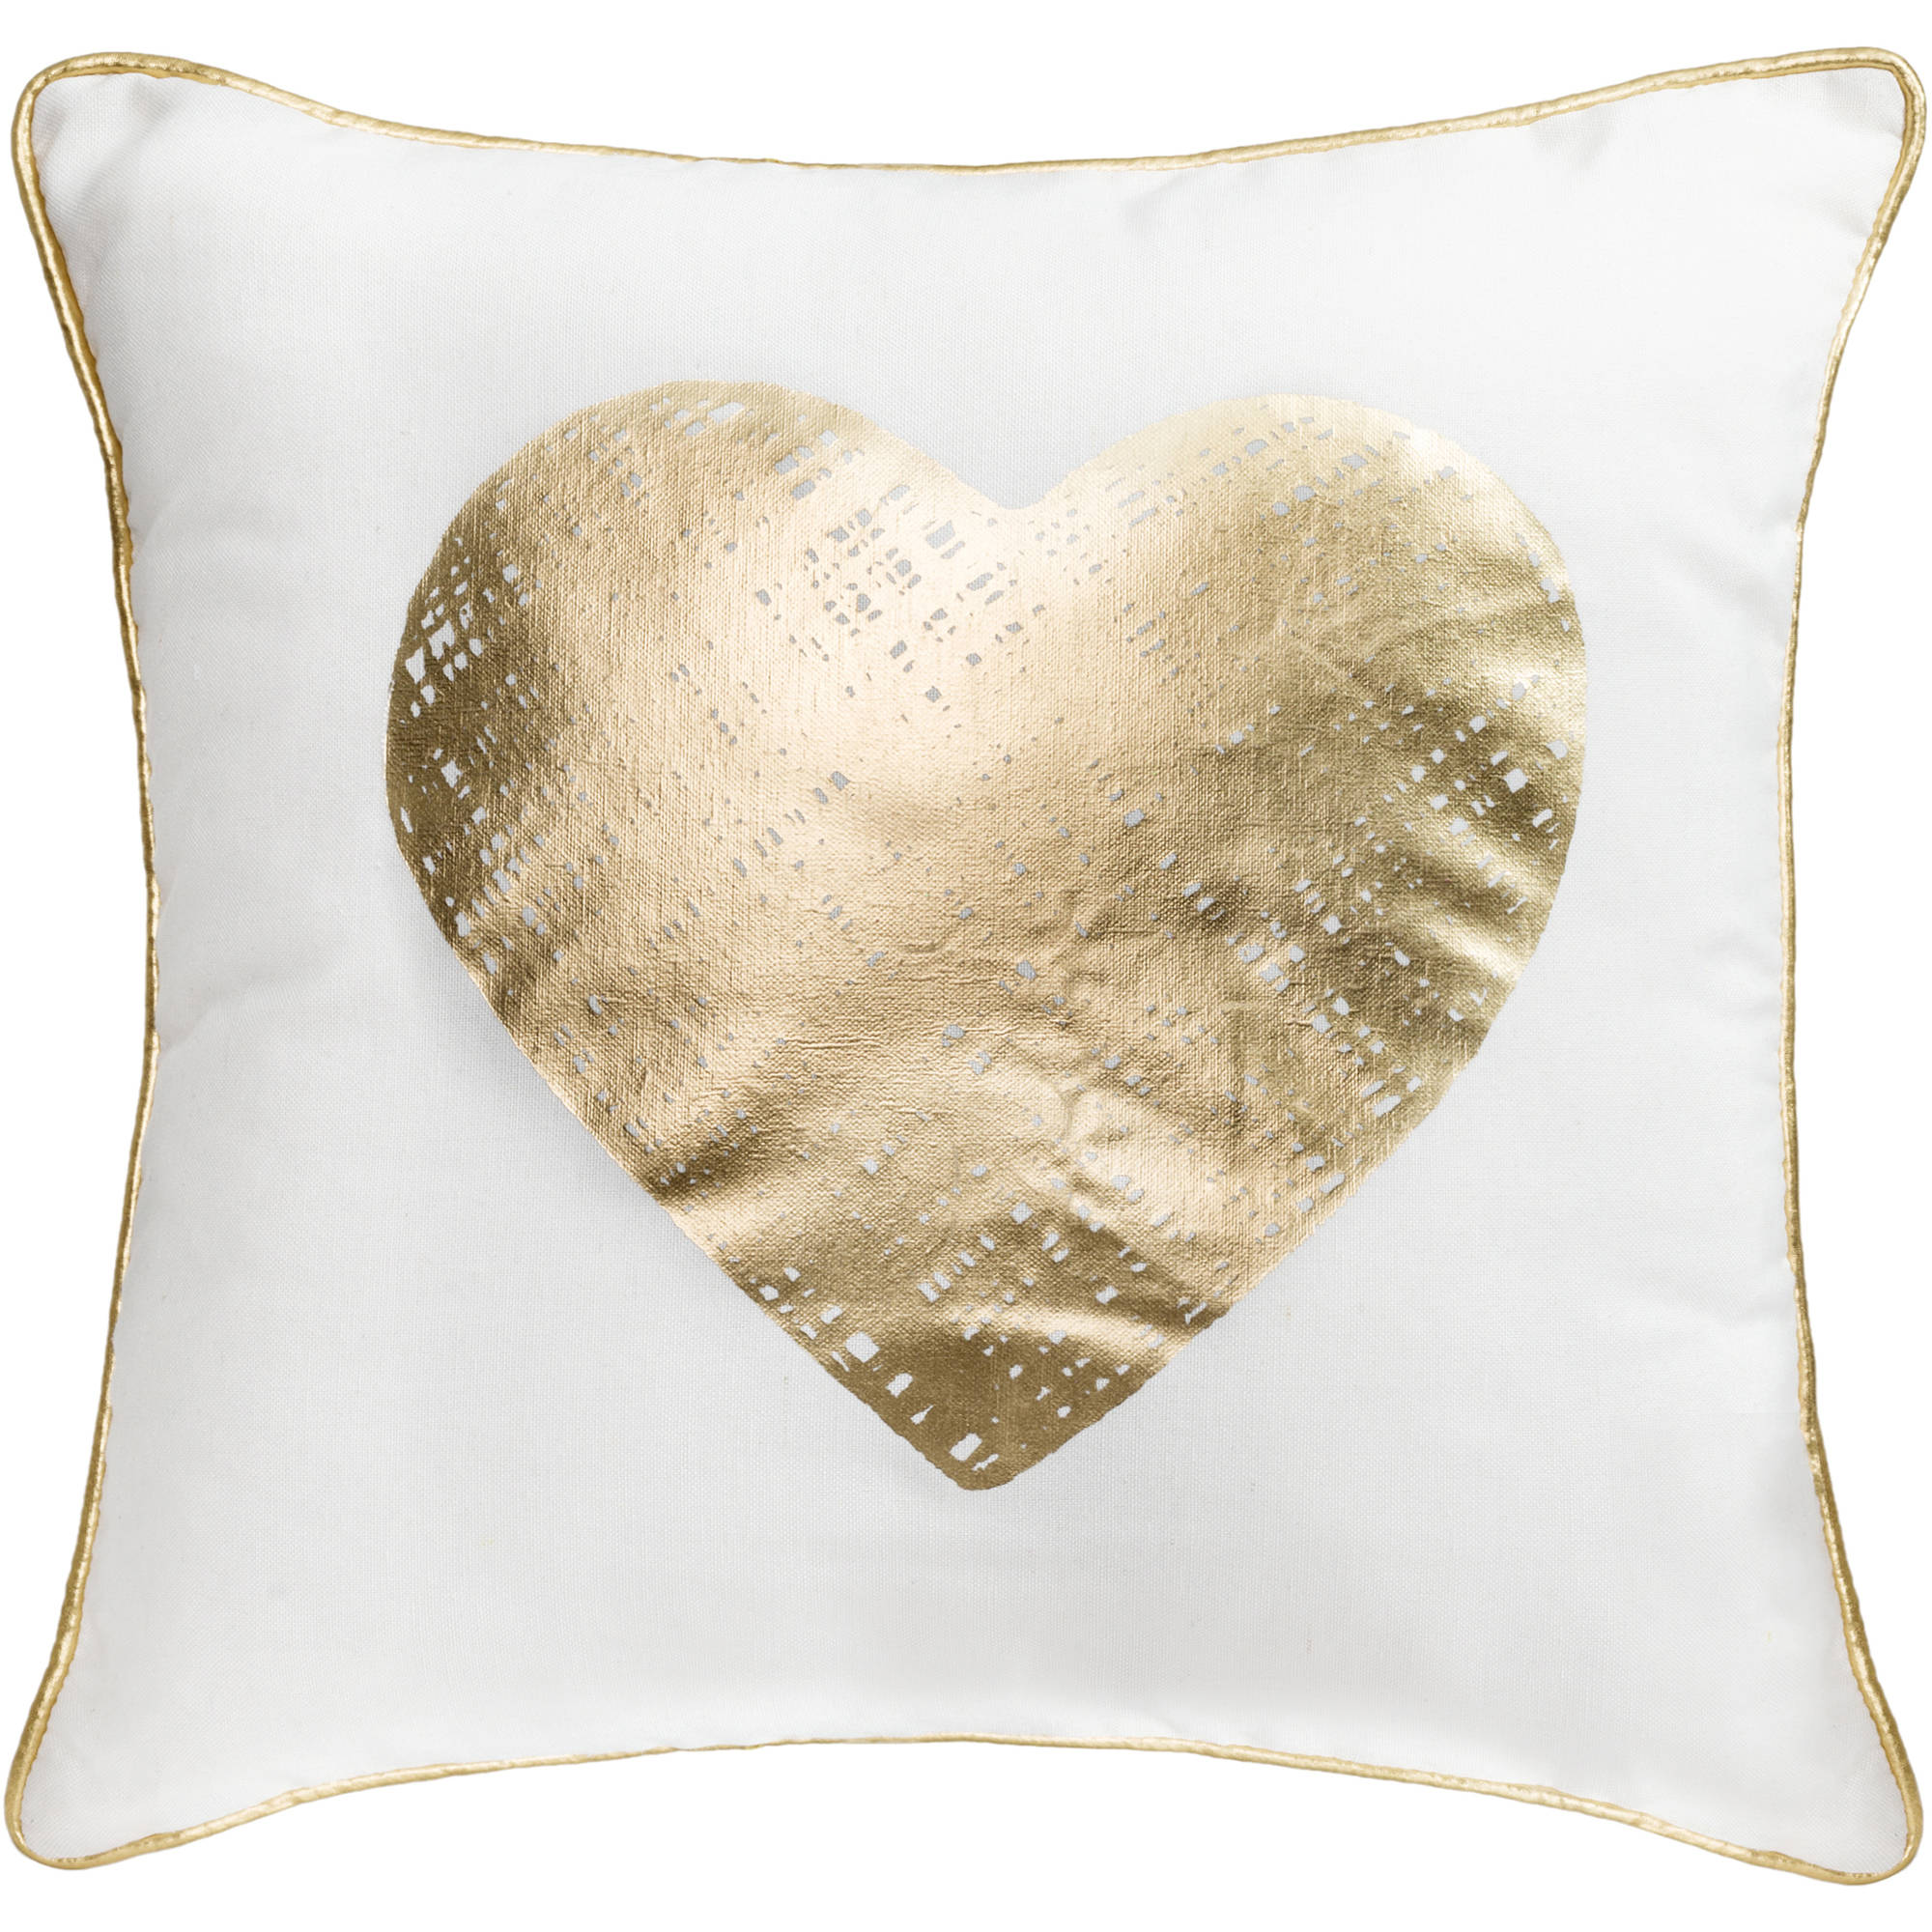 "Better Homes and Gardens Gold Heart 18"" x 18"" Poly/Cotton Fabric Gold Foil Pillow"